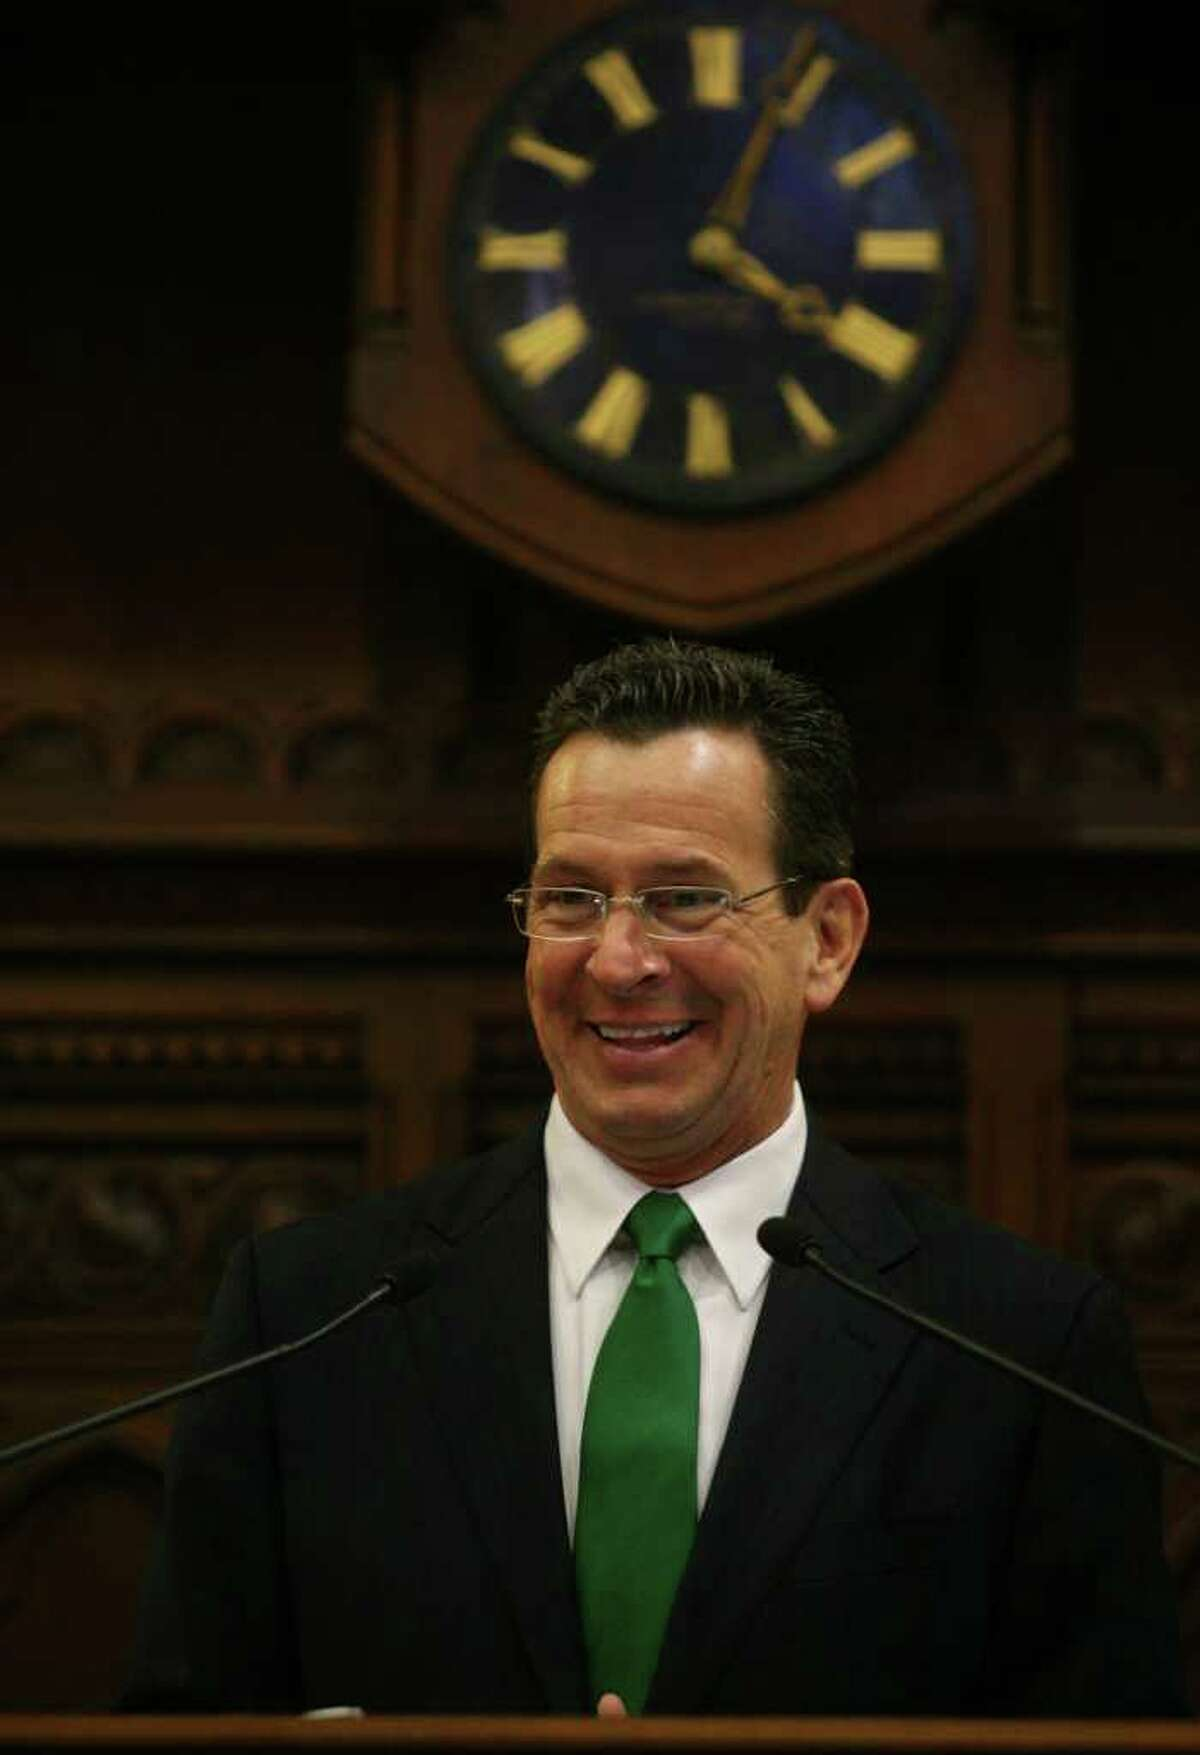 New Connecticut Governor Dannel Malloy addresses a joint session of the Connecticut General Assembly after his inauguration in Hartford on Wednesday, January 5, 2011.